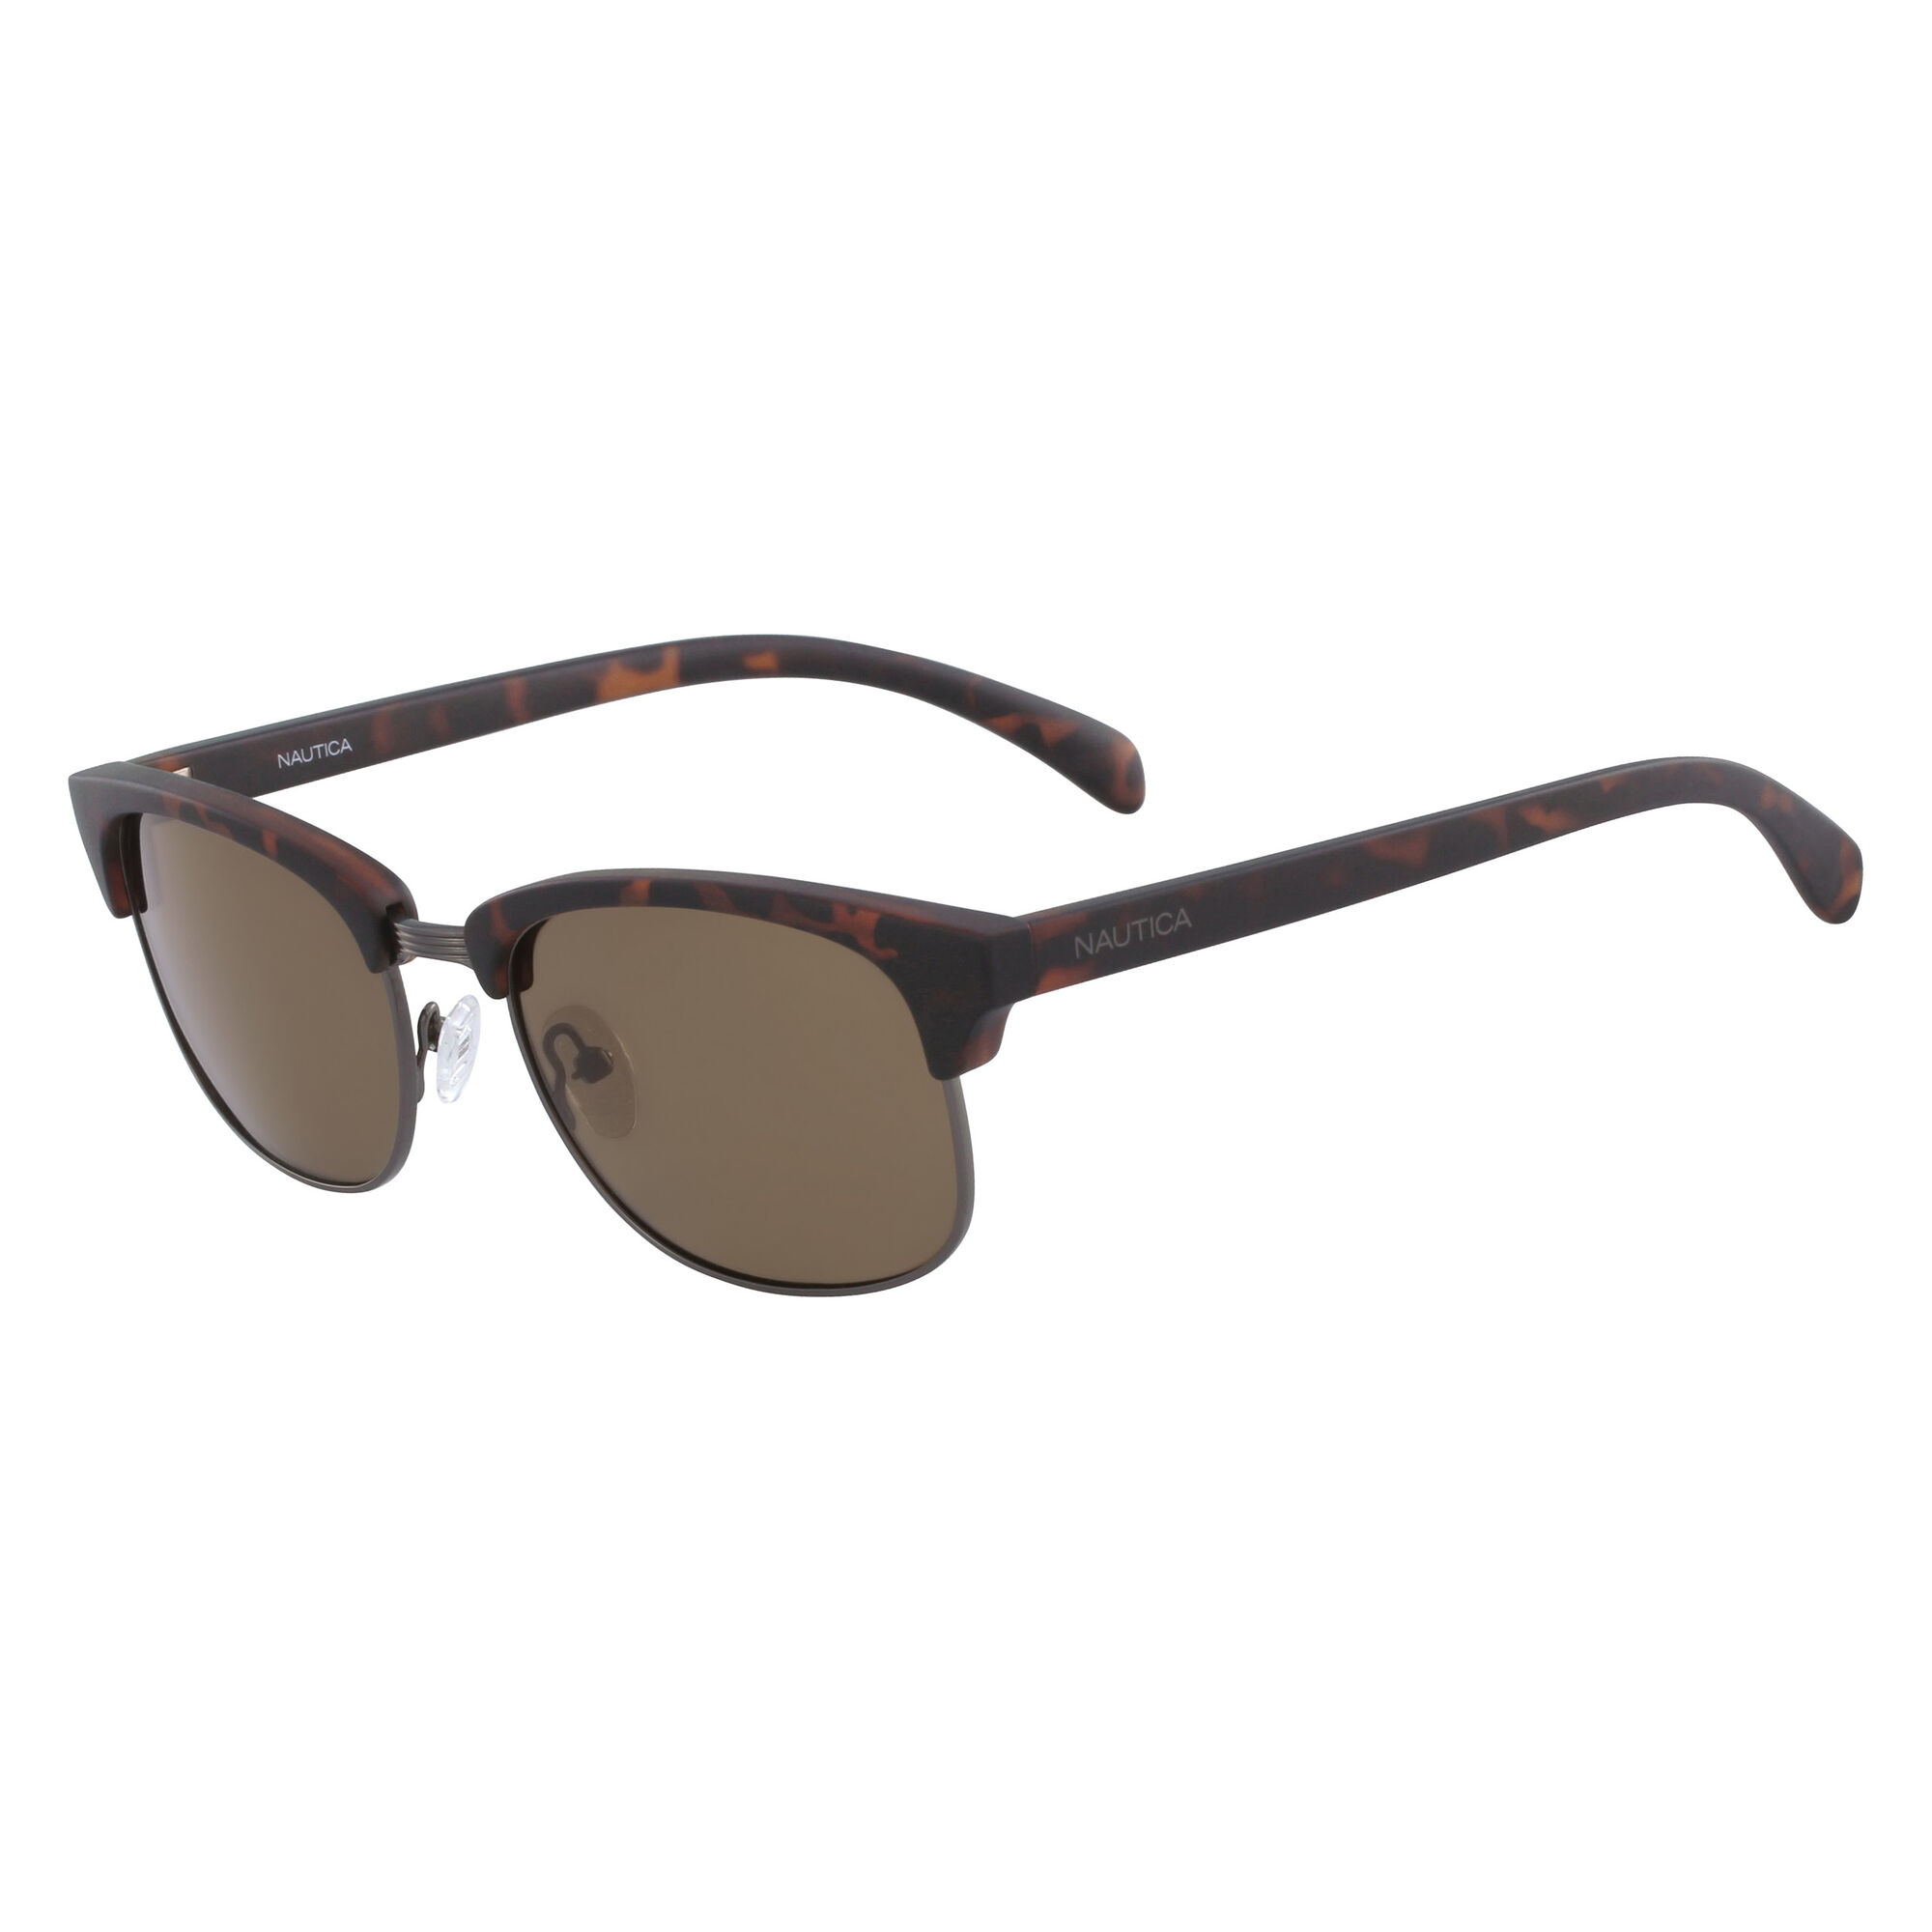 97da115f34 Iconic Clubmaster Sunglasses with Tortoise Frame